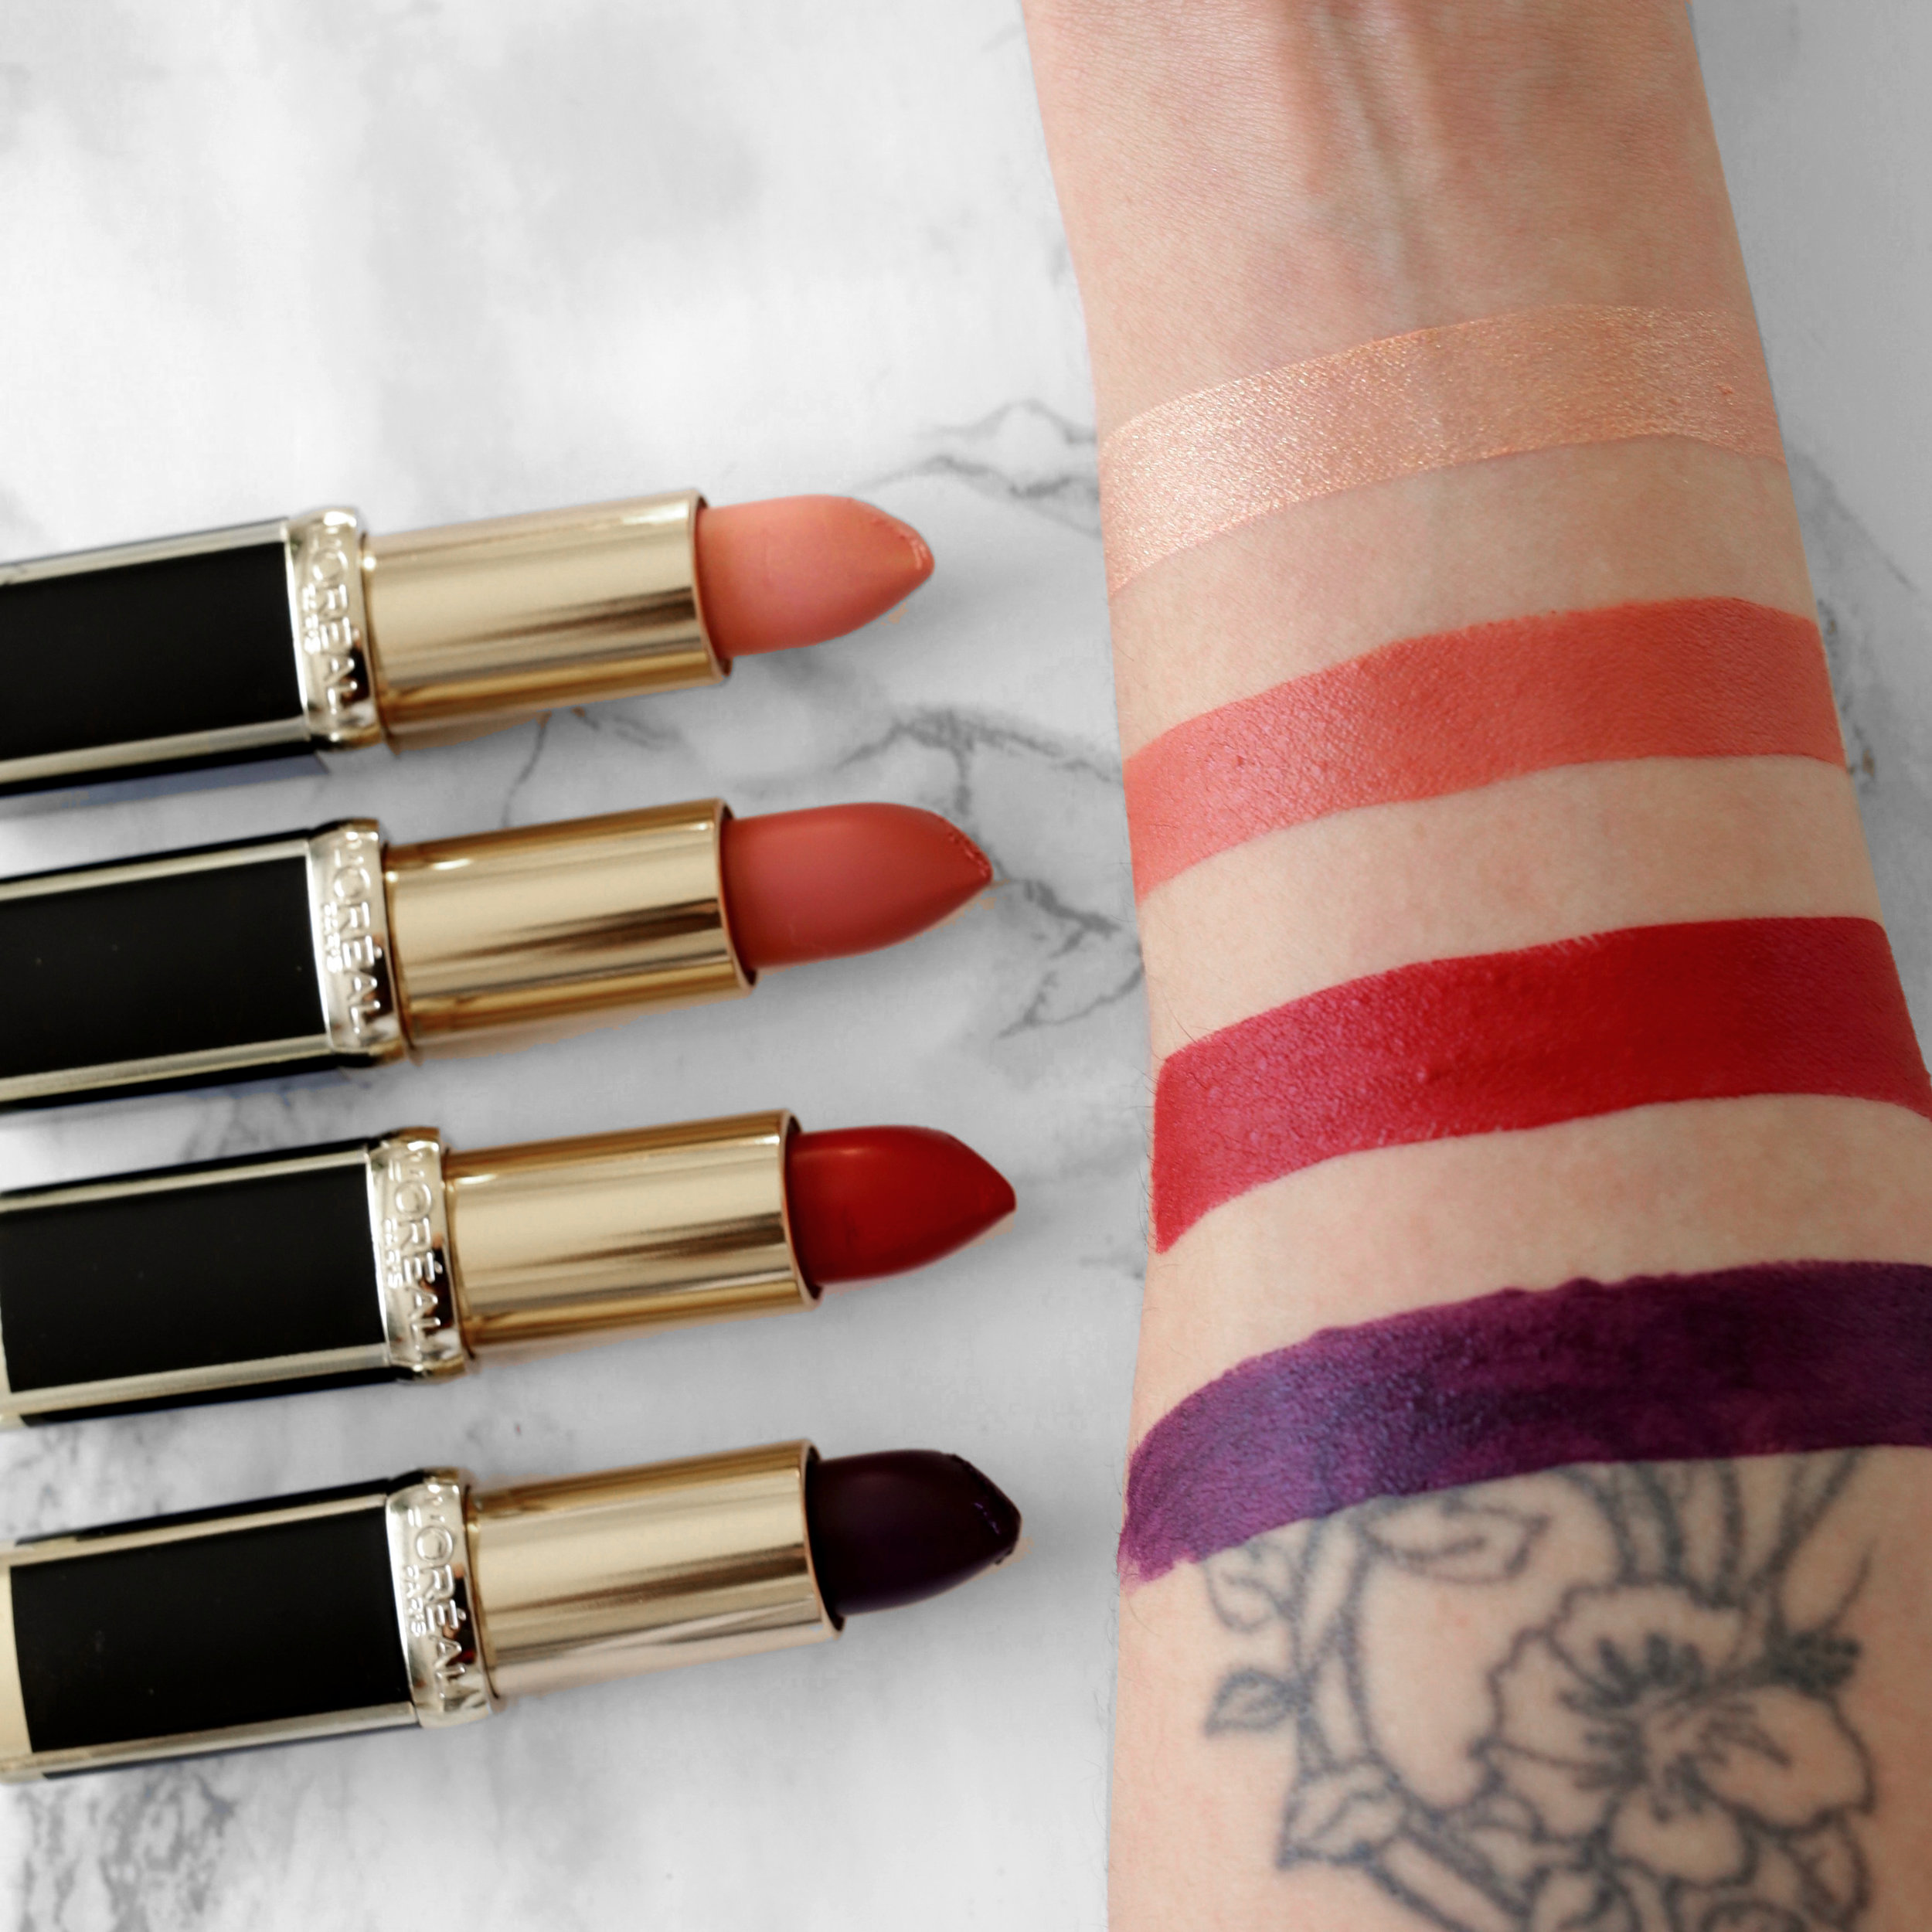 L'Oreal X Balmain Couture LIPSTICK collection - Confidence, Liberation, Domination, Confession Swatches-2082.JPG